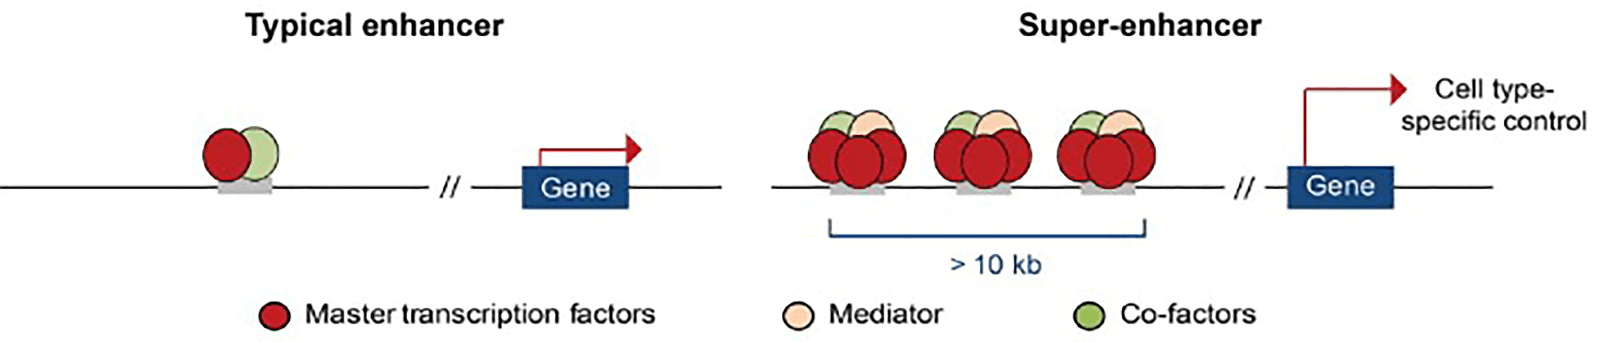 Comparison of super-enhancers and typical enhancers